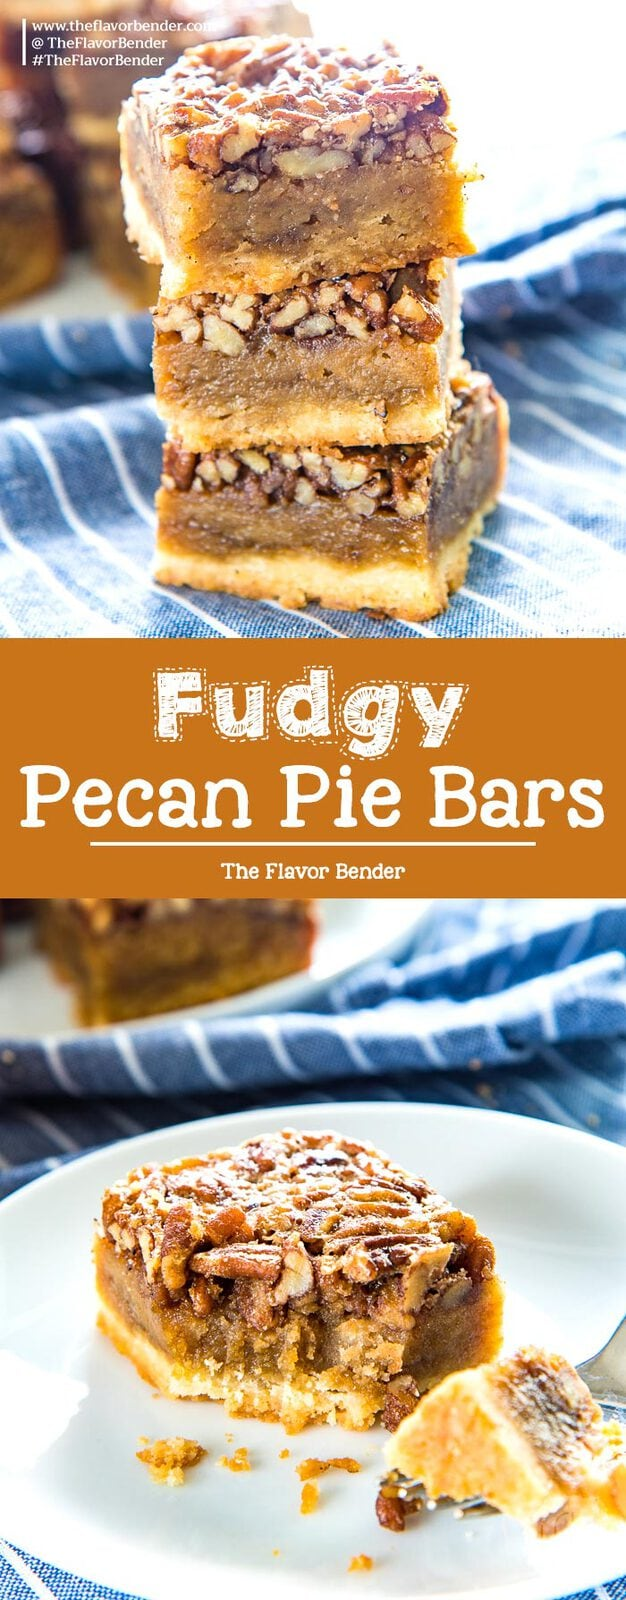 Fudgy Pecan Pie Bars - Classic Pecan pie, but as a bar or slice! A buttery shortbread crust and a fudgy flavorful pecan pie layer. A fantastic and easy dessert for Thanksgiving! #PecanPie #PecanPieBars #ThanksgivingDesserts #FallRecipes